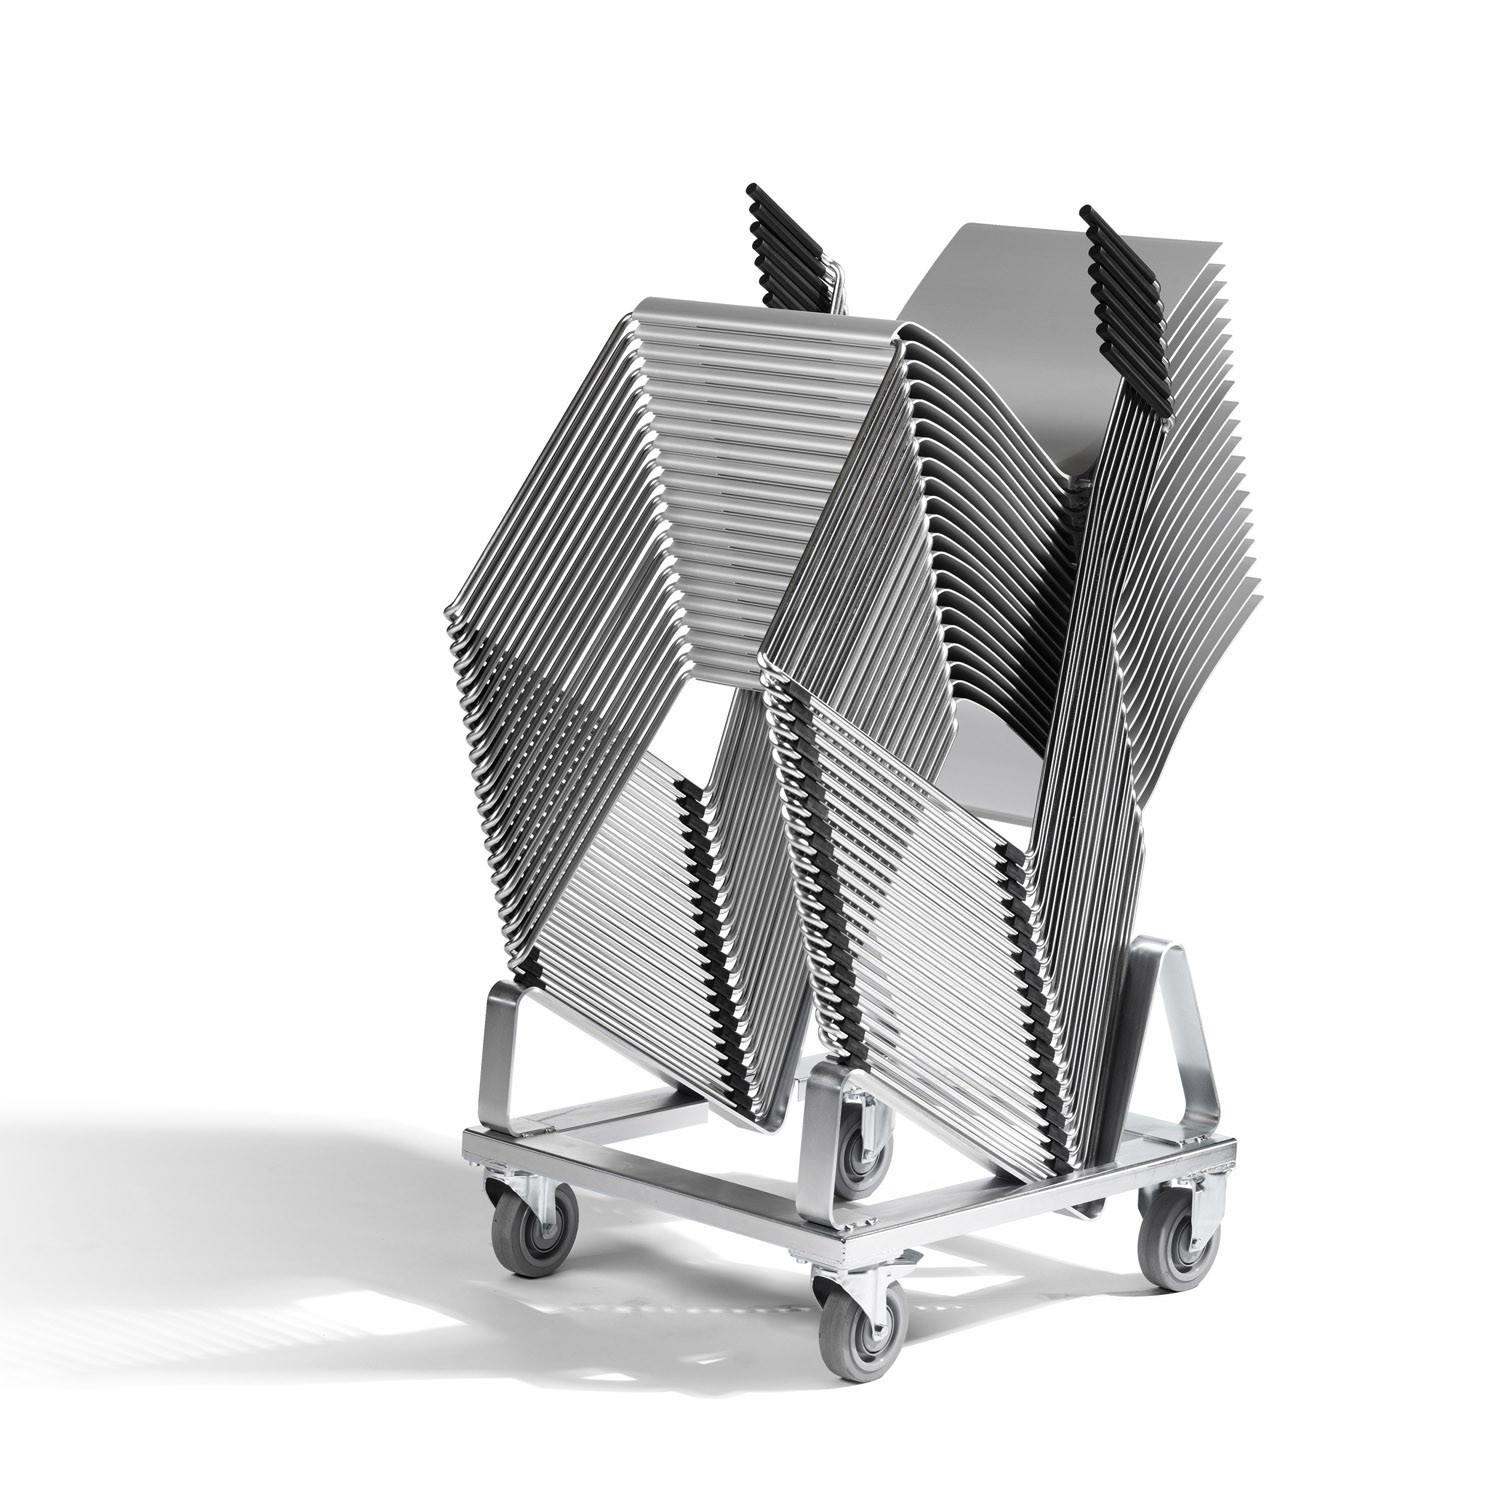 O30A Sting Stacking Armchair by Bla Station